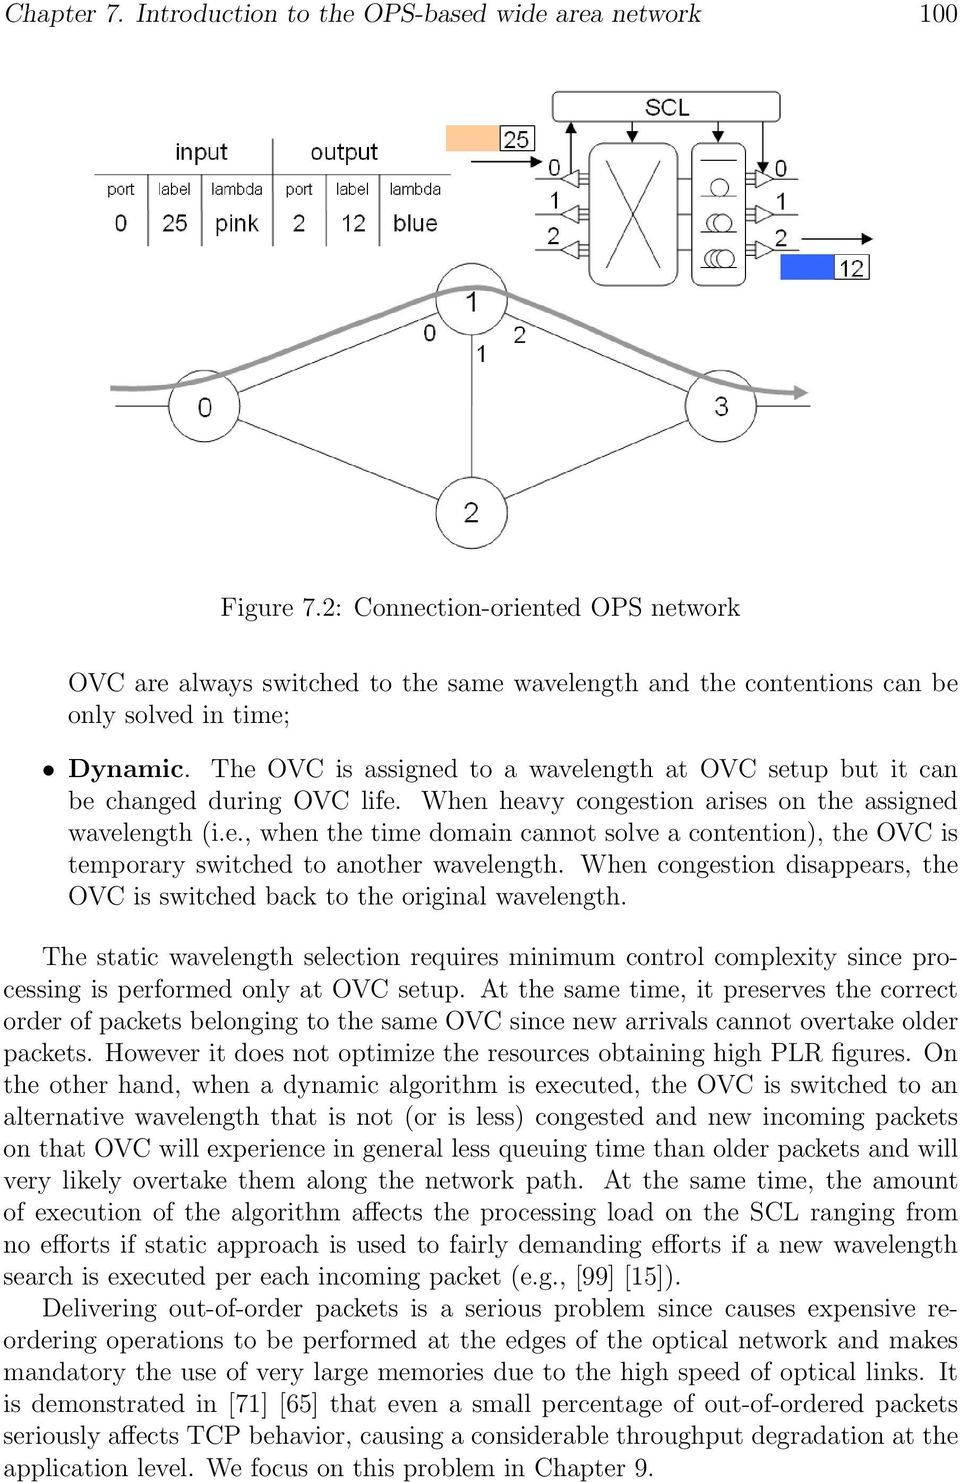 The OVC is assigned to a wavelength at OVC setup but it can be changed during OVC life. When heavy congestion arises on the assigned wavelength (i.e., when the time domain cannot solve a contention), the OVC is temporary switched to another wavelength.